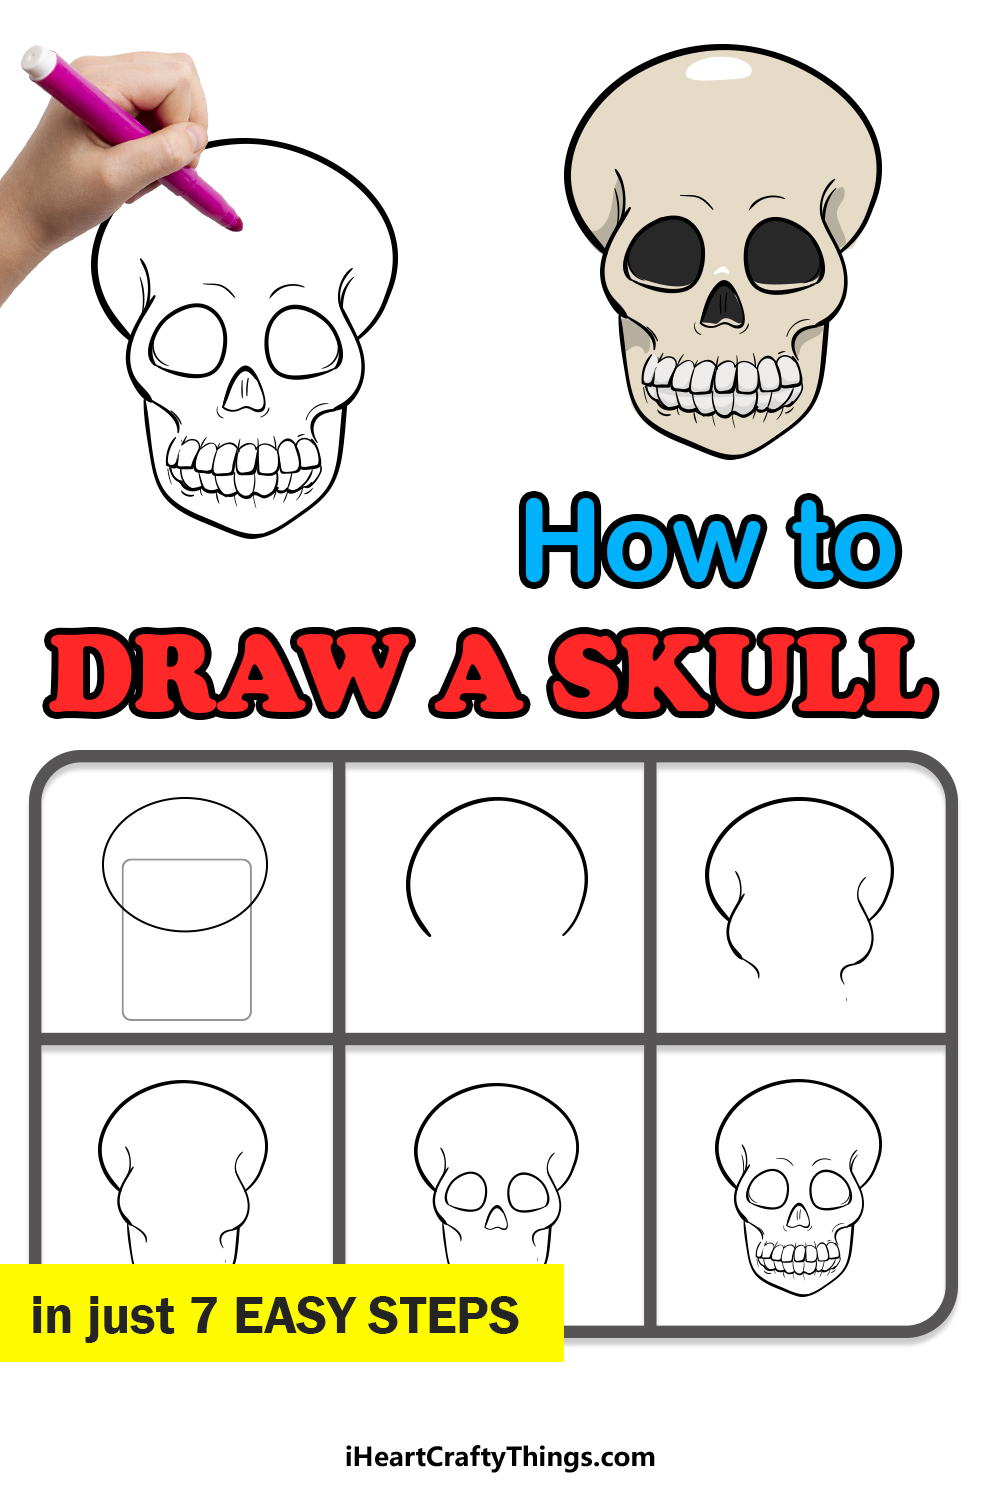 how to draw a skull in 7 easy steps